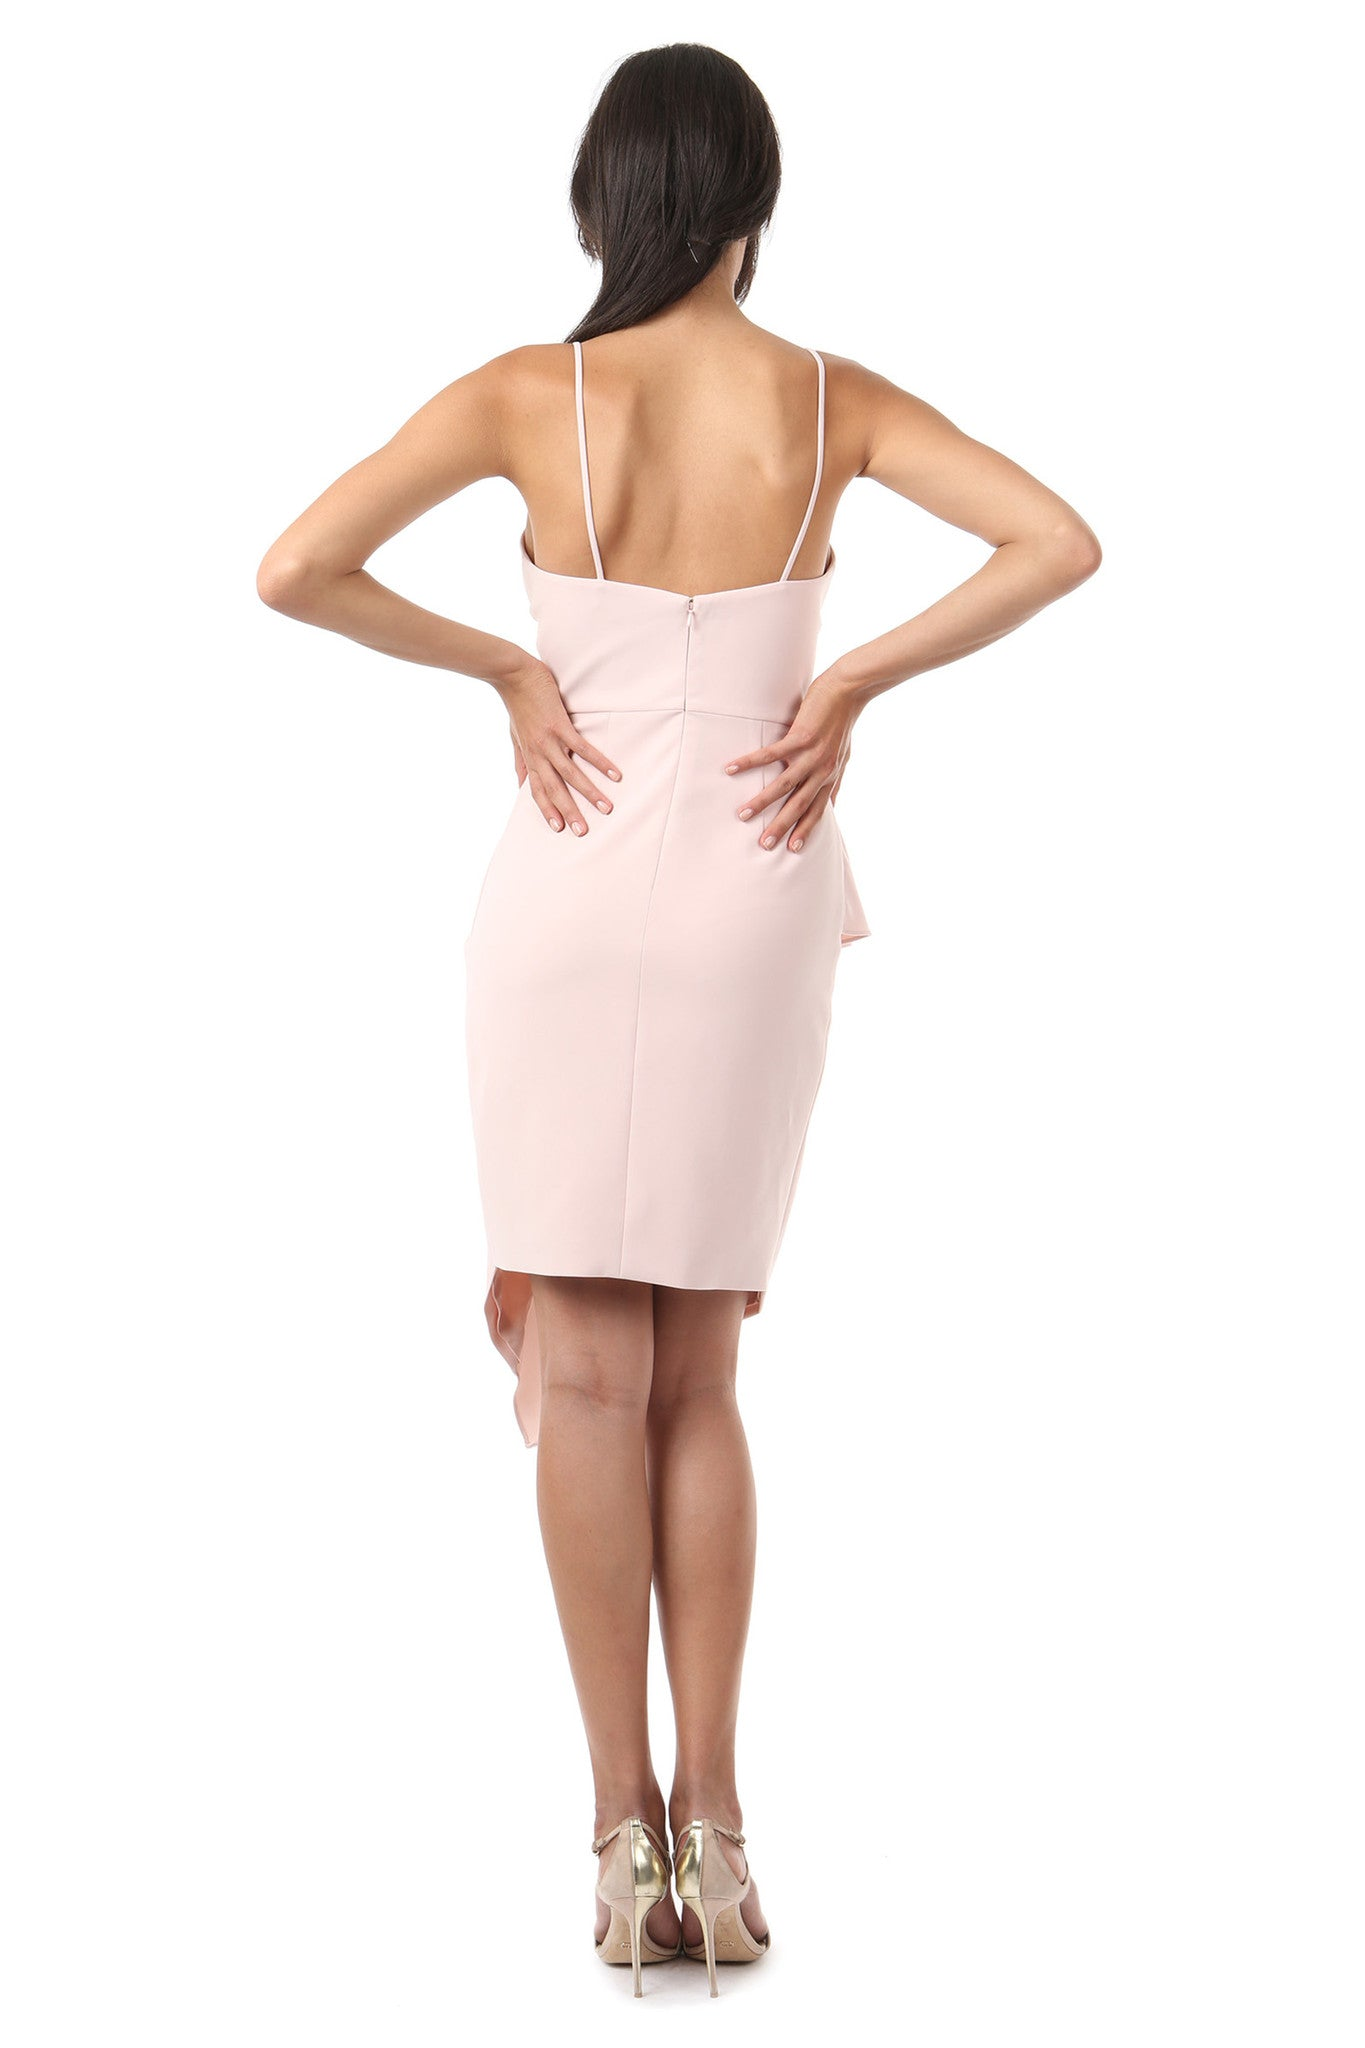 Jay Godfrey Blush Ruffle Tank Top Dress - Back View